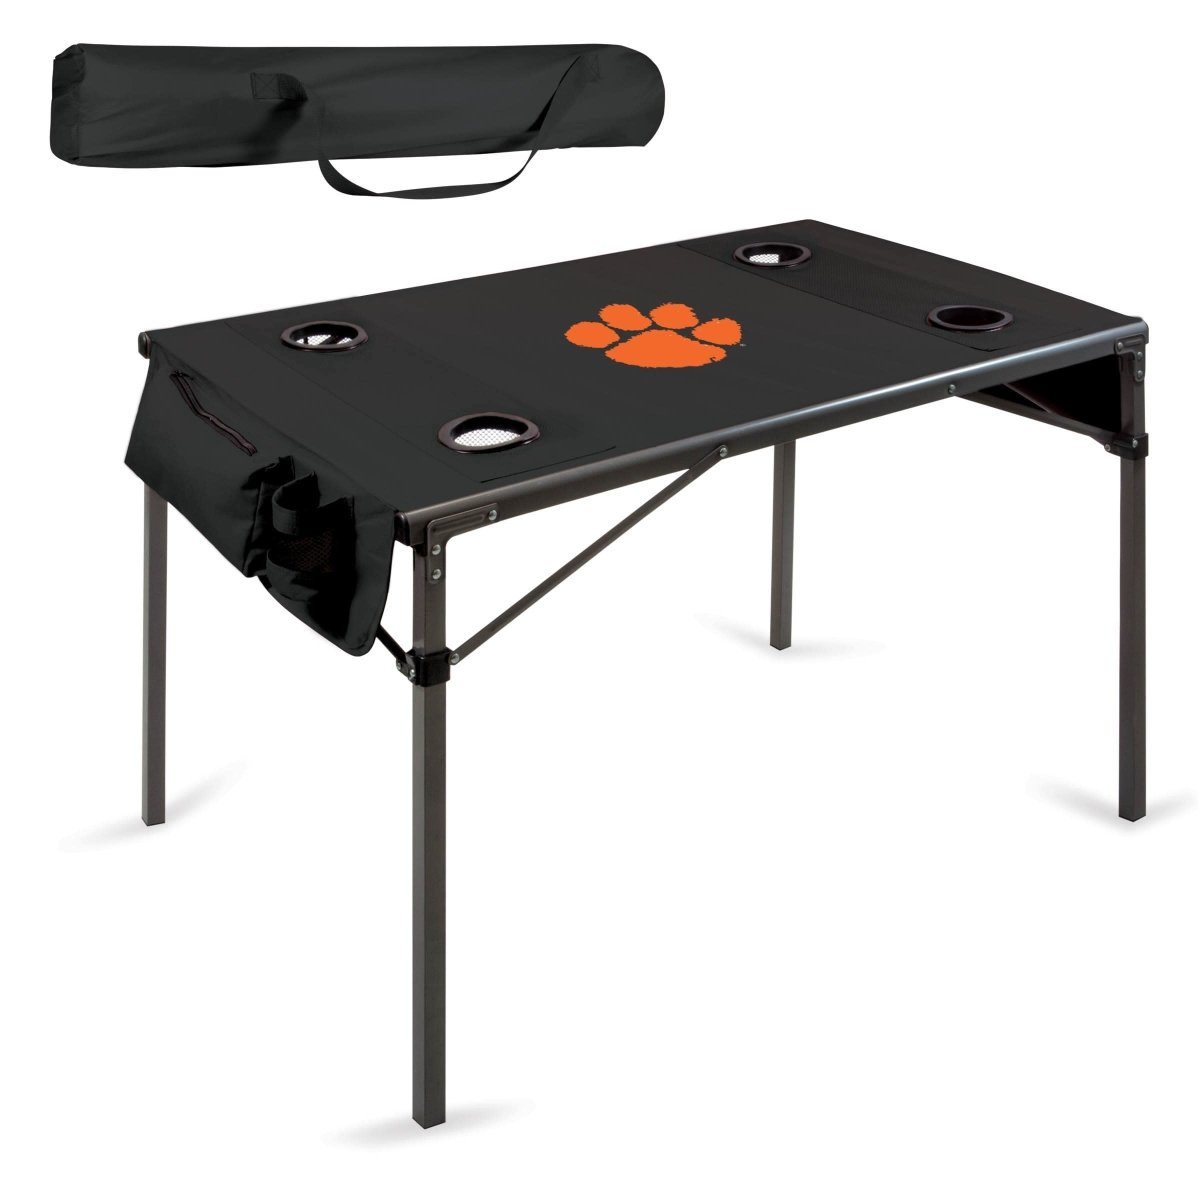 Travel Table With Orange Paw - Mr. Knickerbocker